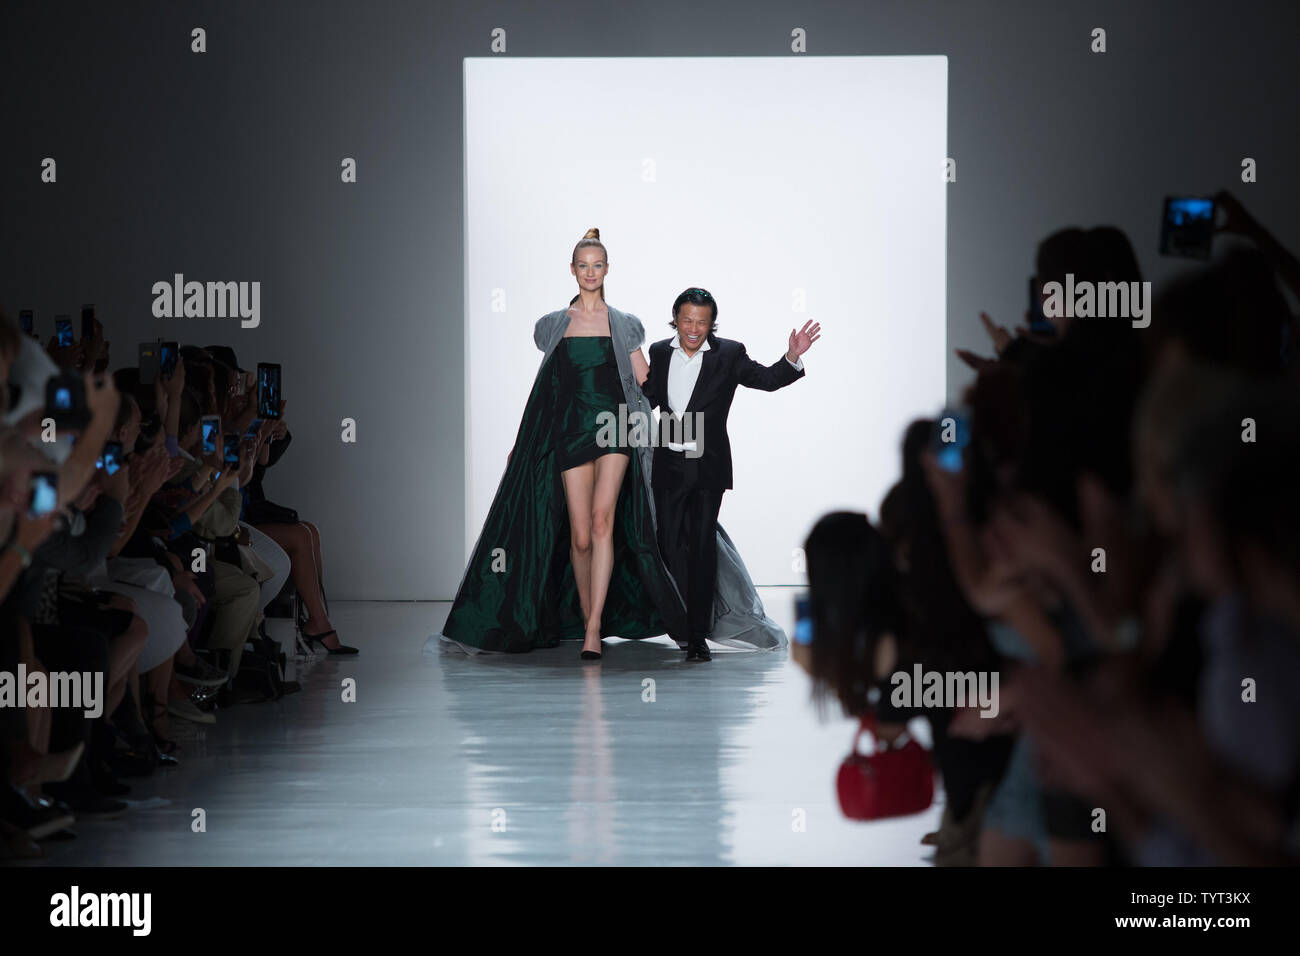 Zang Toi Fashion Designer High Resolution Stock Photography And Images Alamy